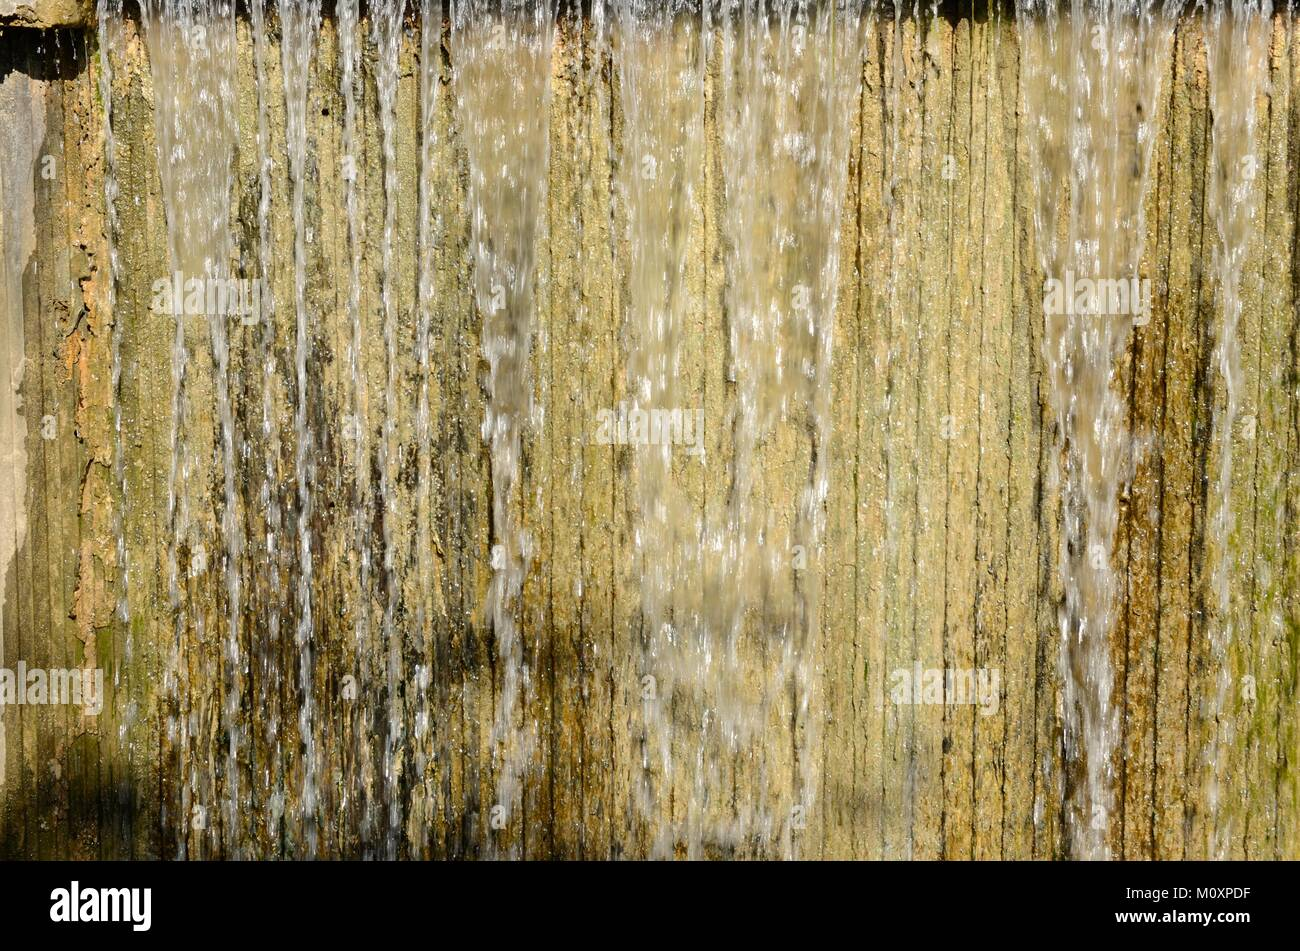 Water curtain at pond located in Island of the Carthusians in Seville, Andalusia, Spain. - Stock Image